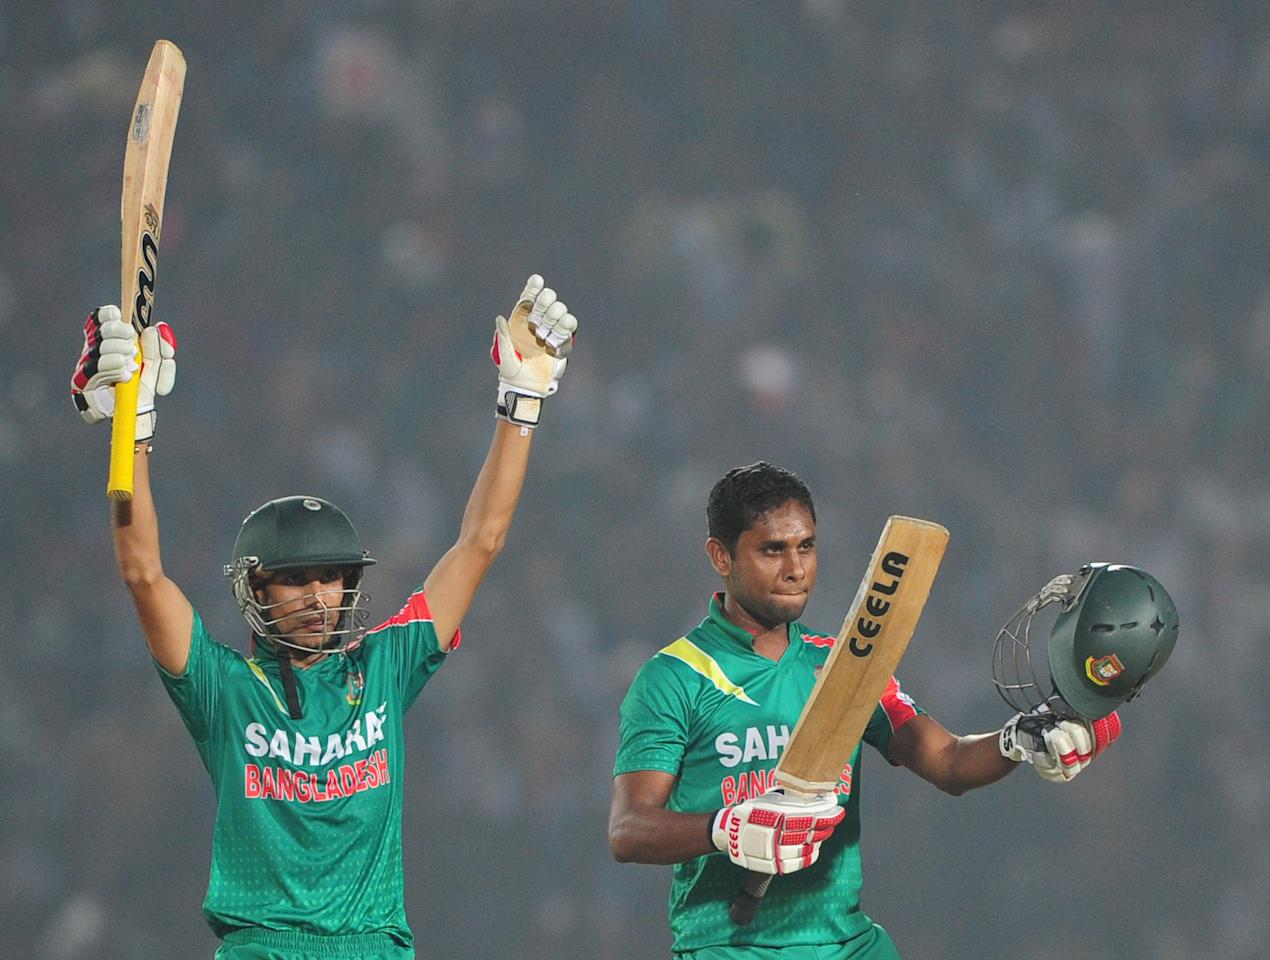 Bangladesh batsmen Sohag Gazi (R) and Nasir Hossain (L) react after winning the third One-Day International (ODI) cricket match between Bangladesh and New Zealand at Khan Jahan Ali Stadium in Fatullah on the outskirts of Dhaka on November 3, 2013 . Bangladesh win the series against New Zealand by 3-0. AFP PHOTO/ Munir uz ZAMAN        (Photo credit should read MUNIR UZ ZAMAN/AFP/Getty Images)